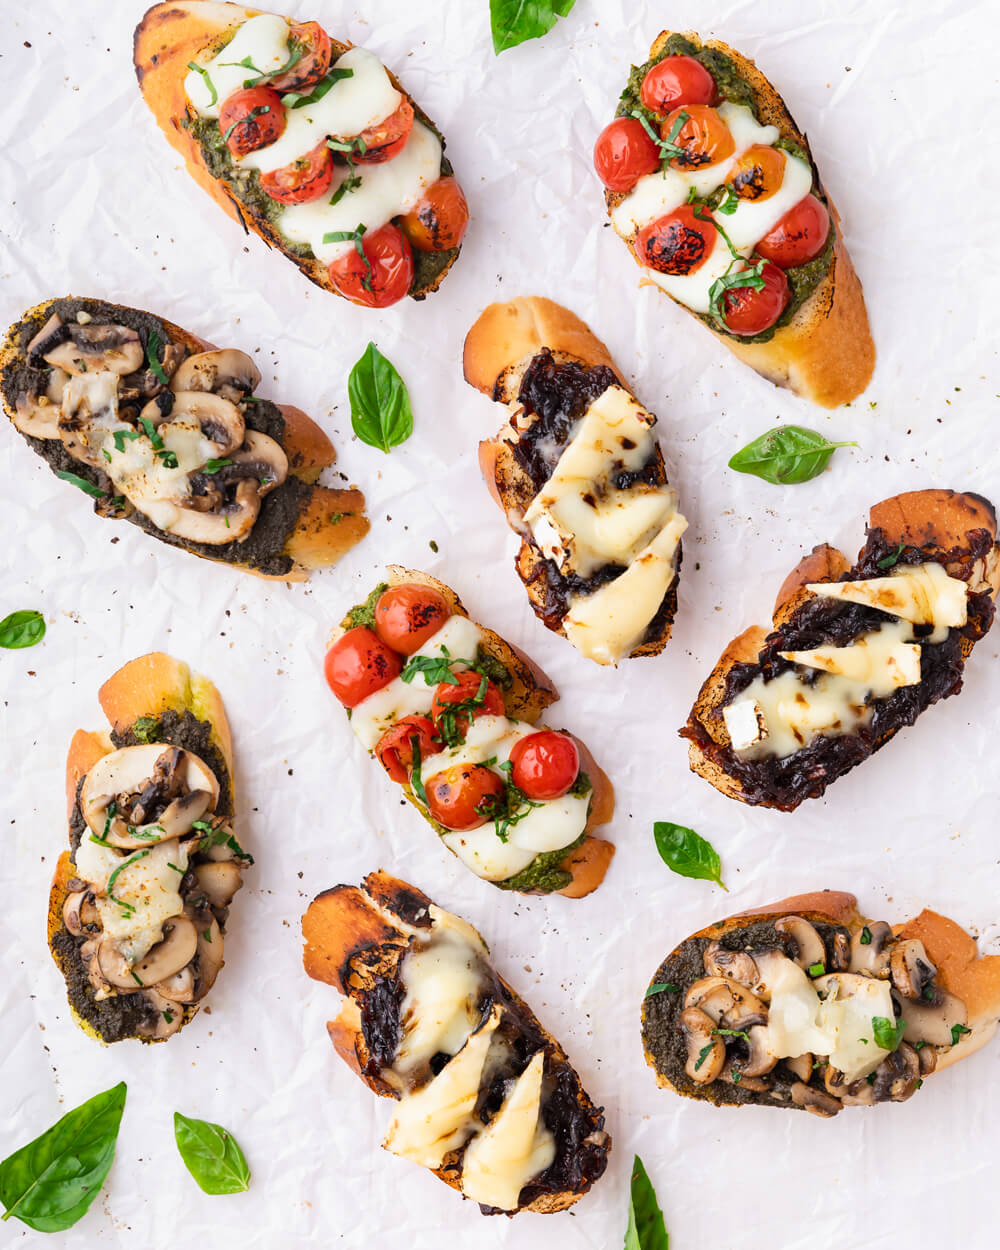 ASSORTED-VEG-BRUSCHETTA